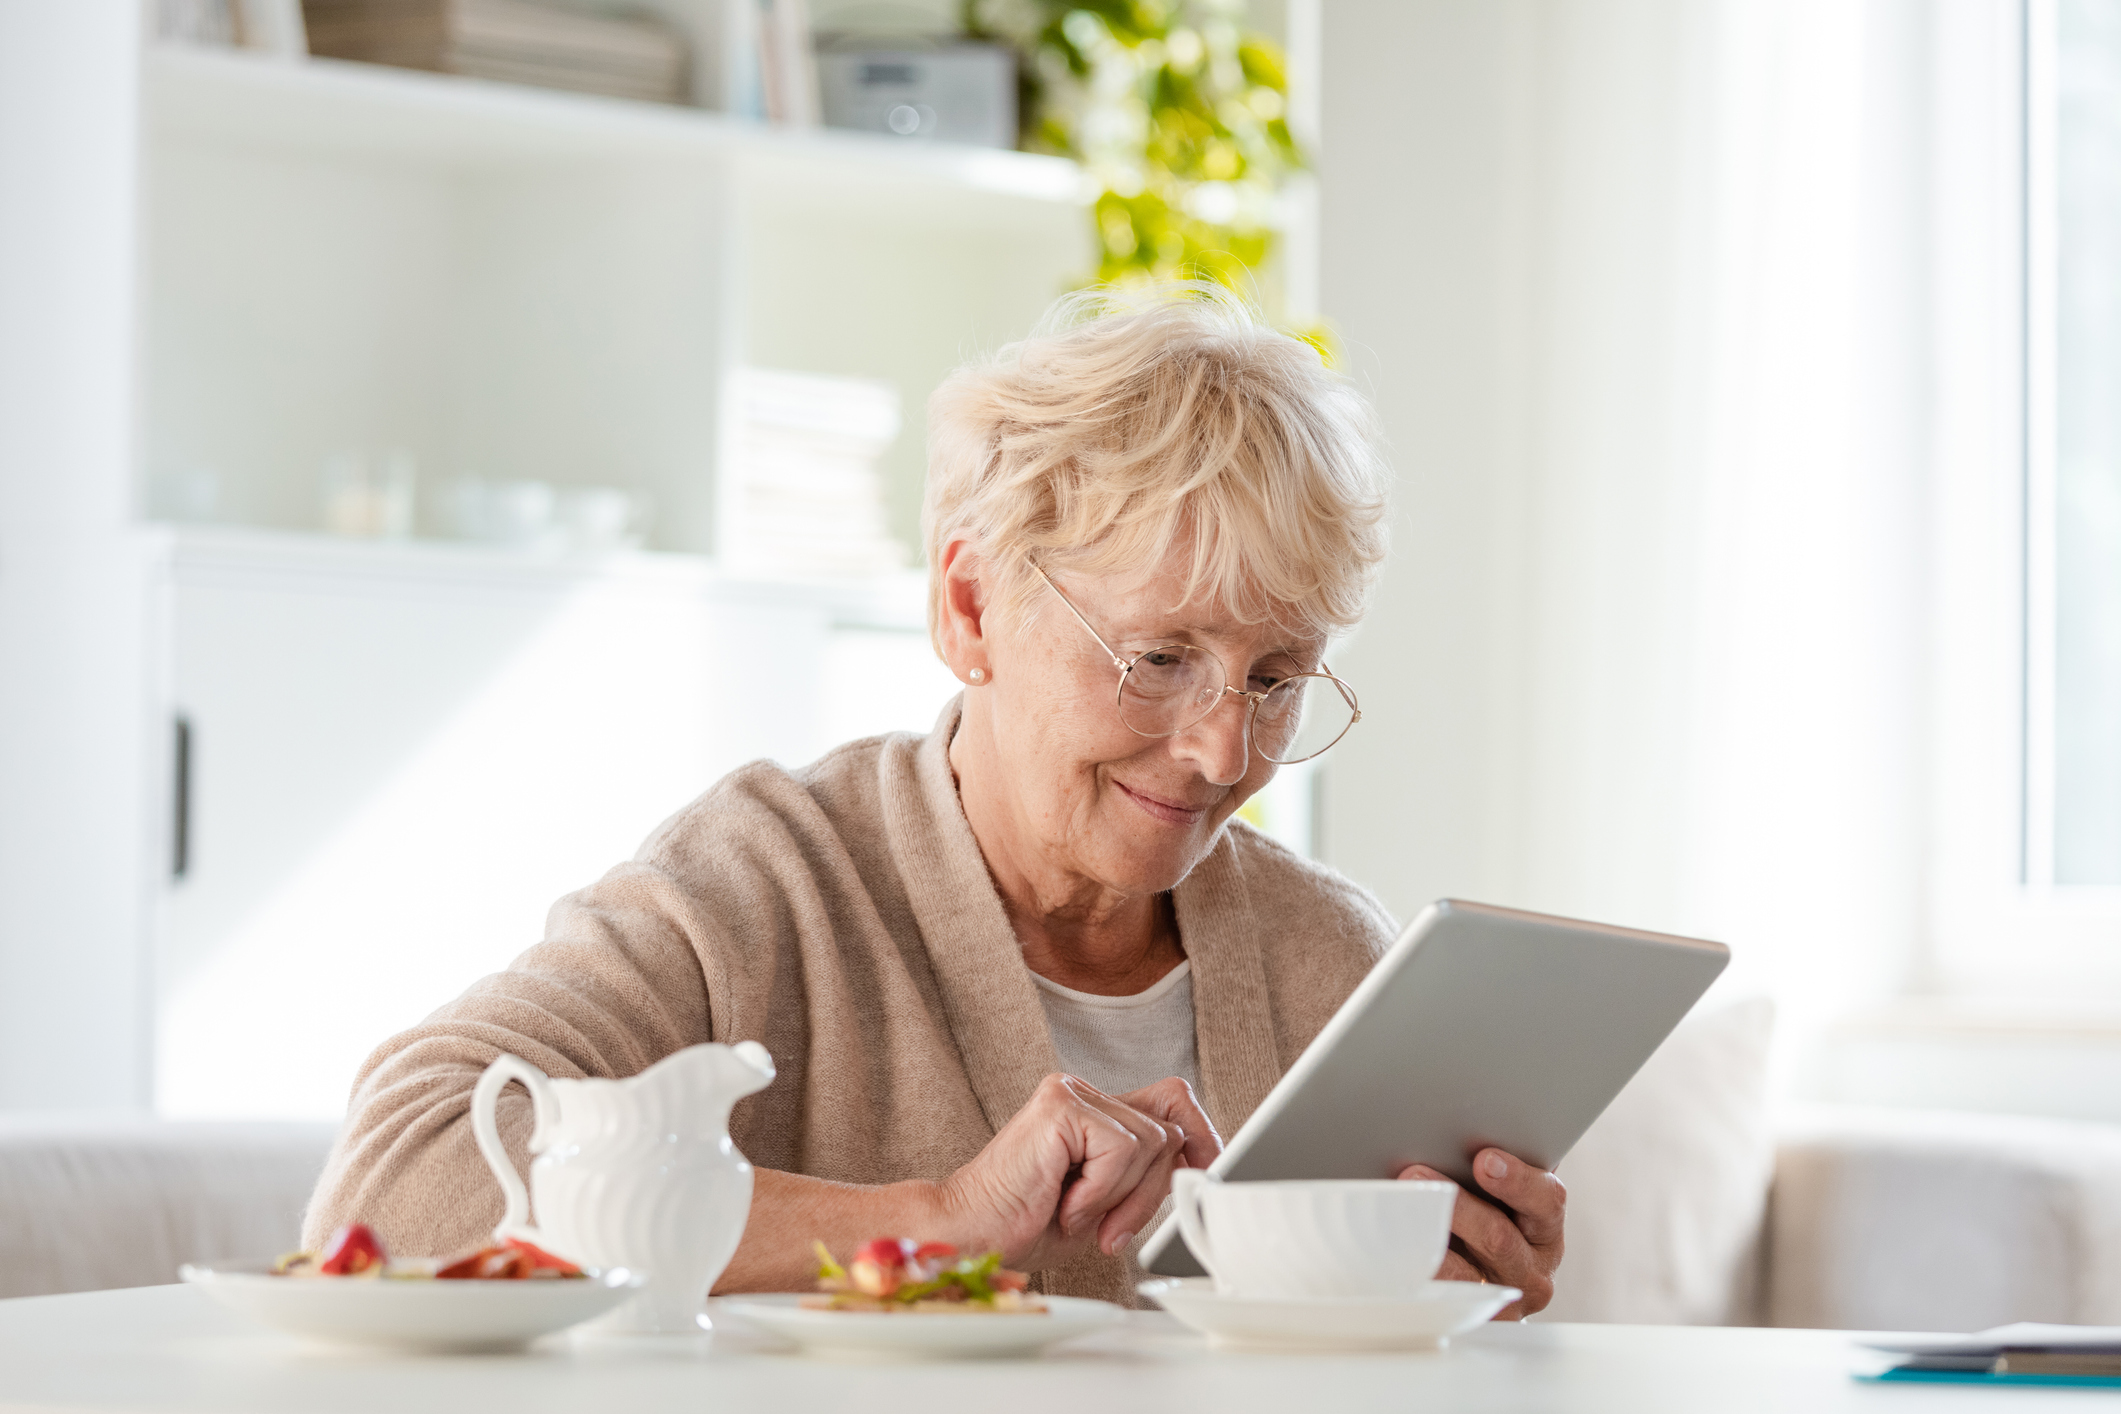 elderly woman siting at kitchen counter on tablet